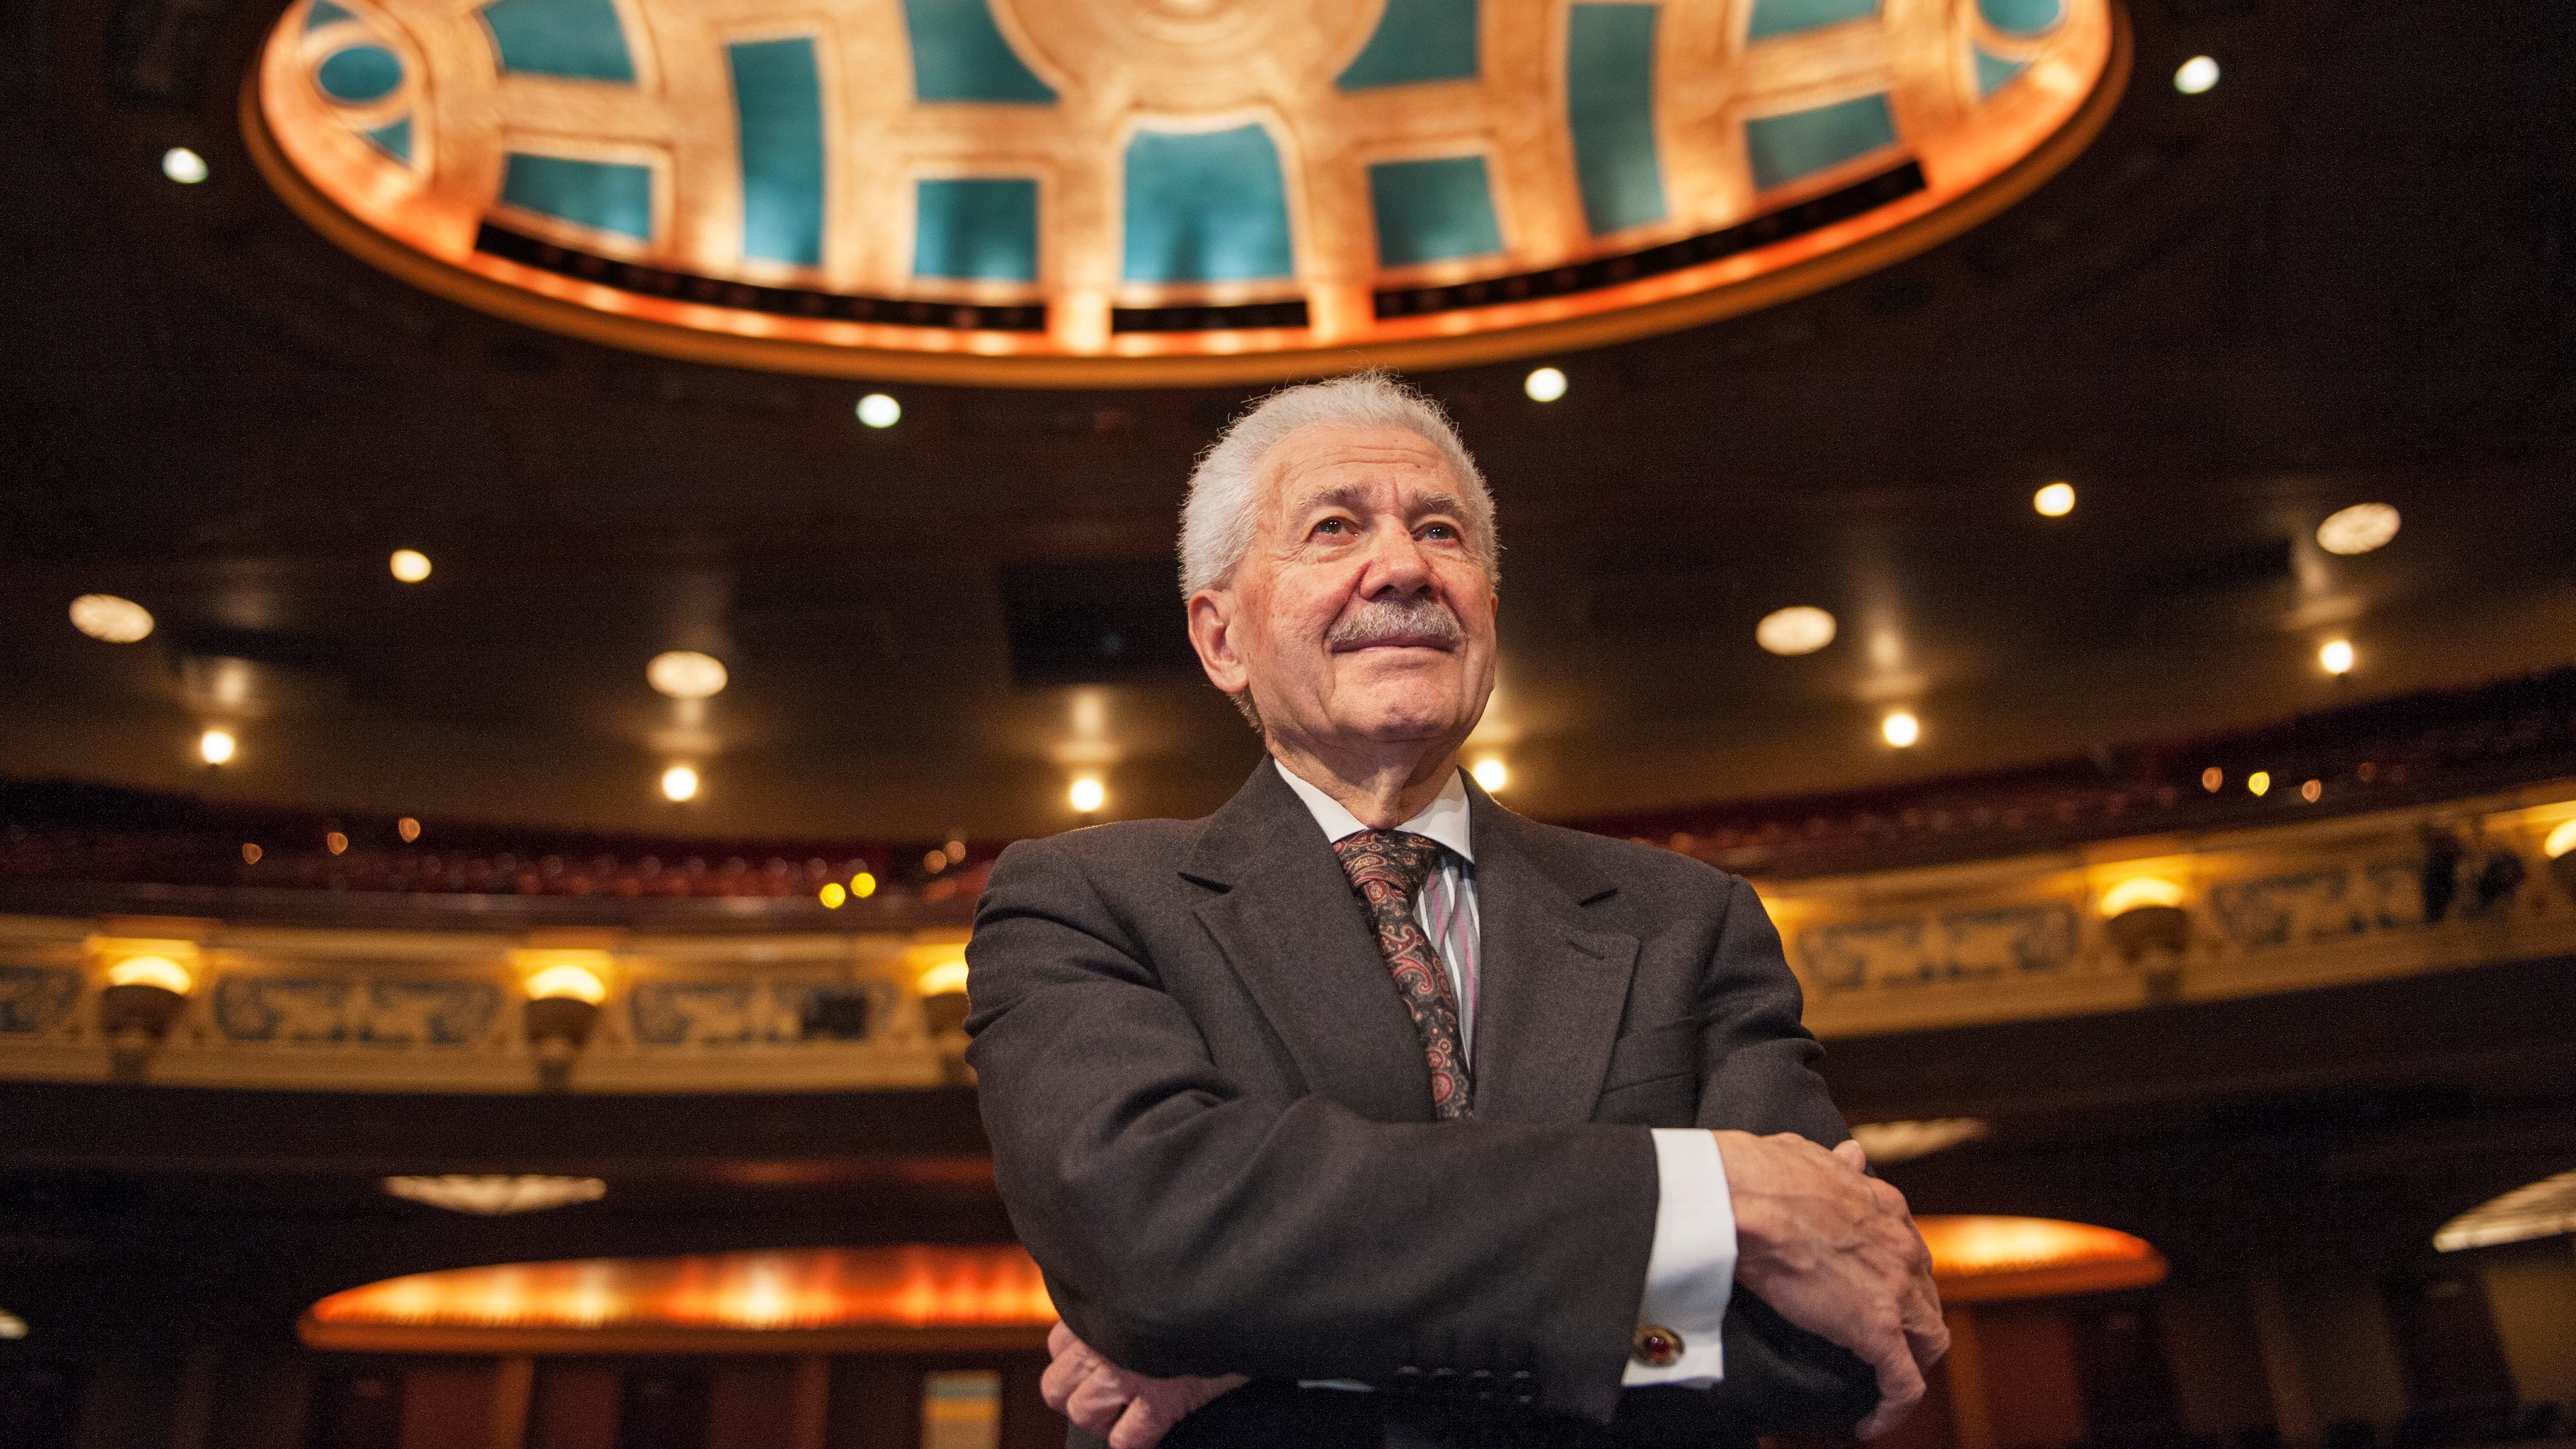 Michigan Opera Theatre artistic director David DiChiera inside the Detroit Opera House in Detroit.  DiChiera, a cultural powerhouse who brought opera back to the Motor City and helped jump-start downtown's revival, died Tuesday.